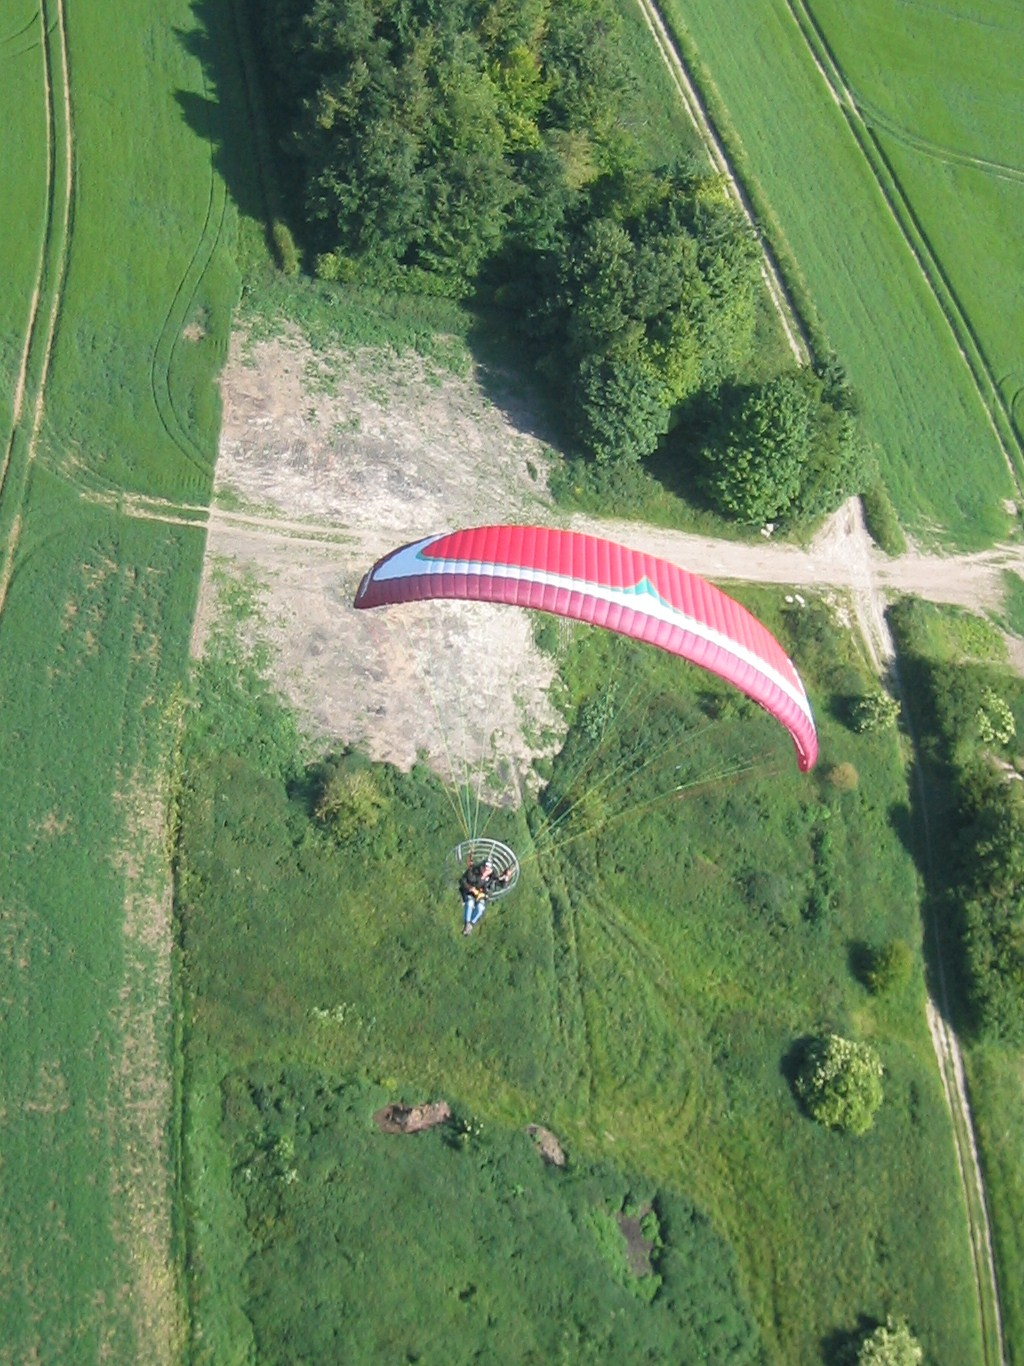 Fresh Breeze J bar arrangement - Paramotors  - www Paramotorclub org